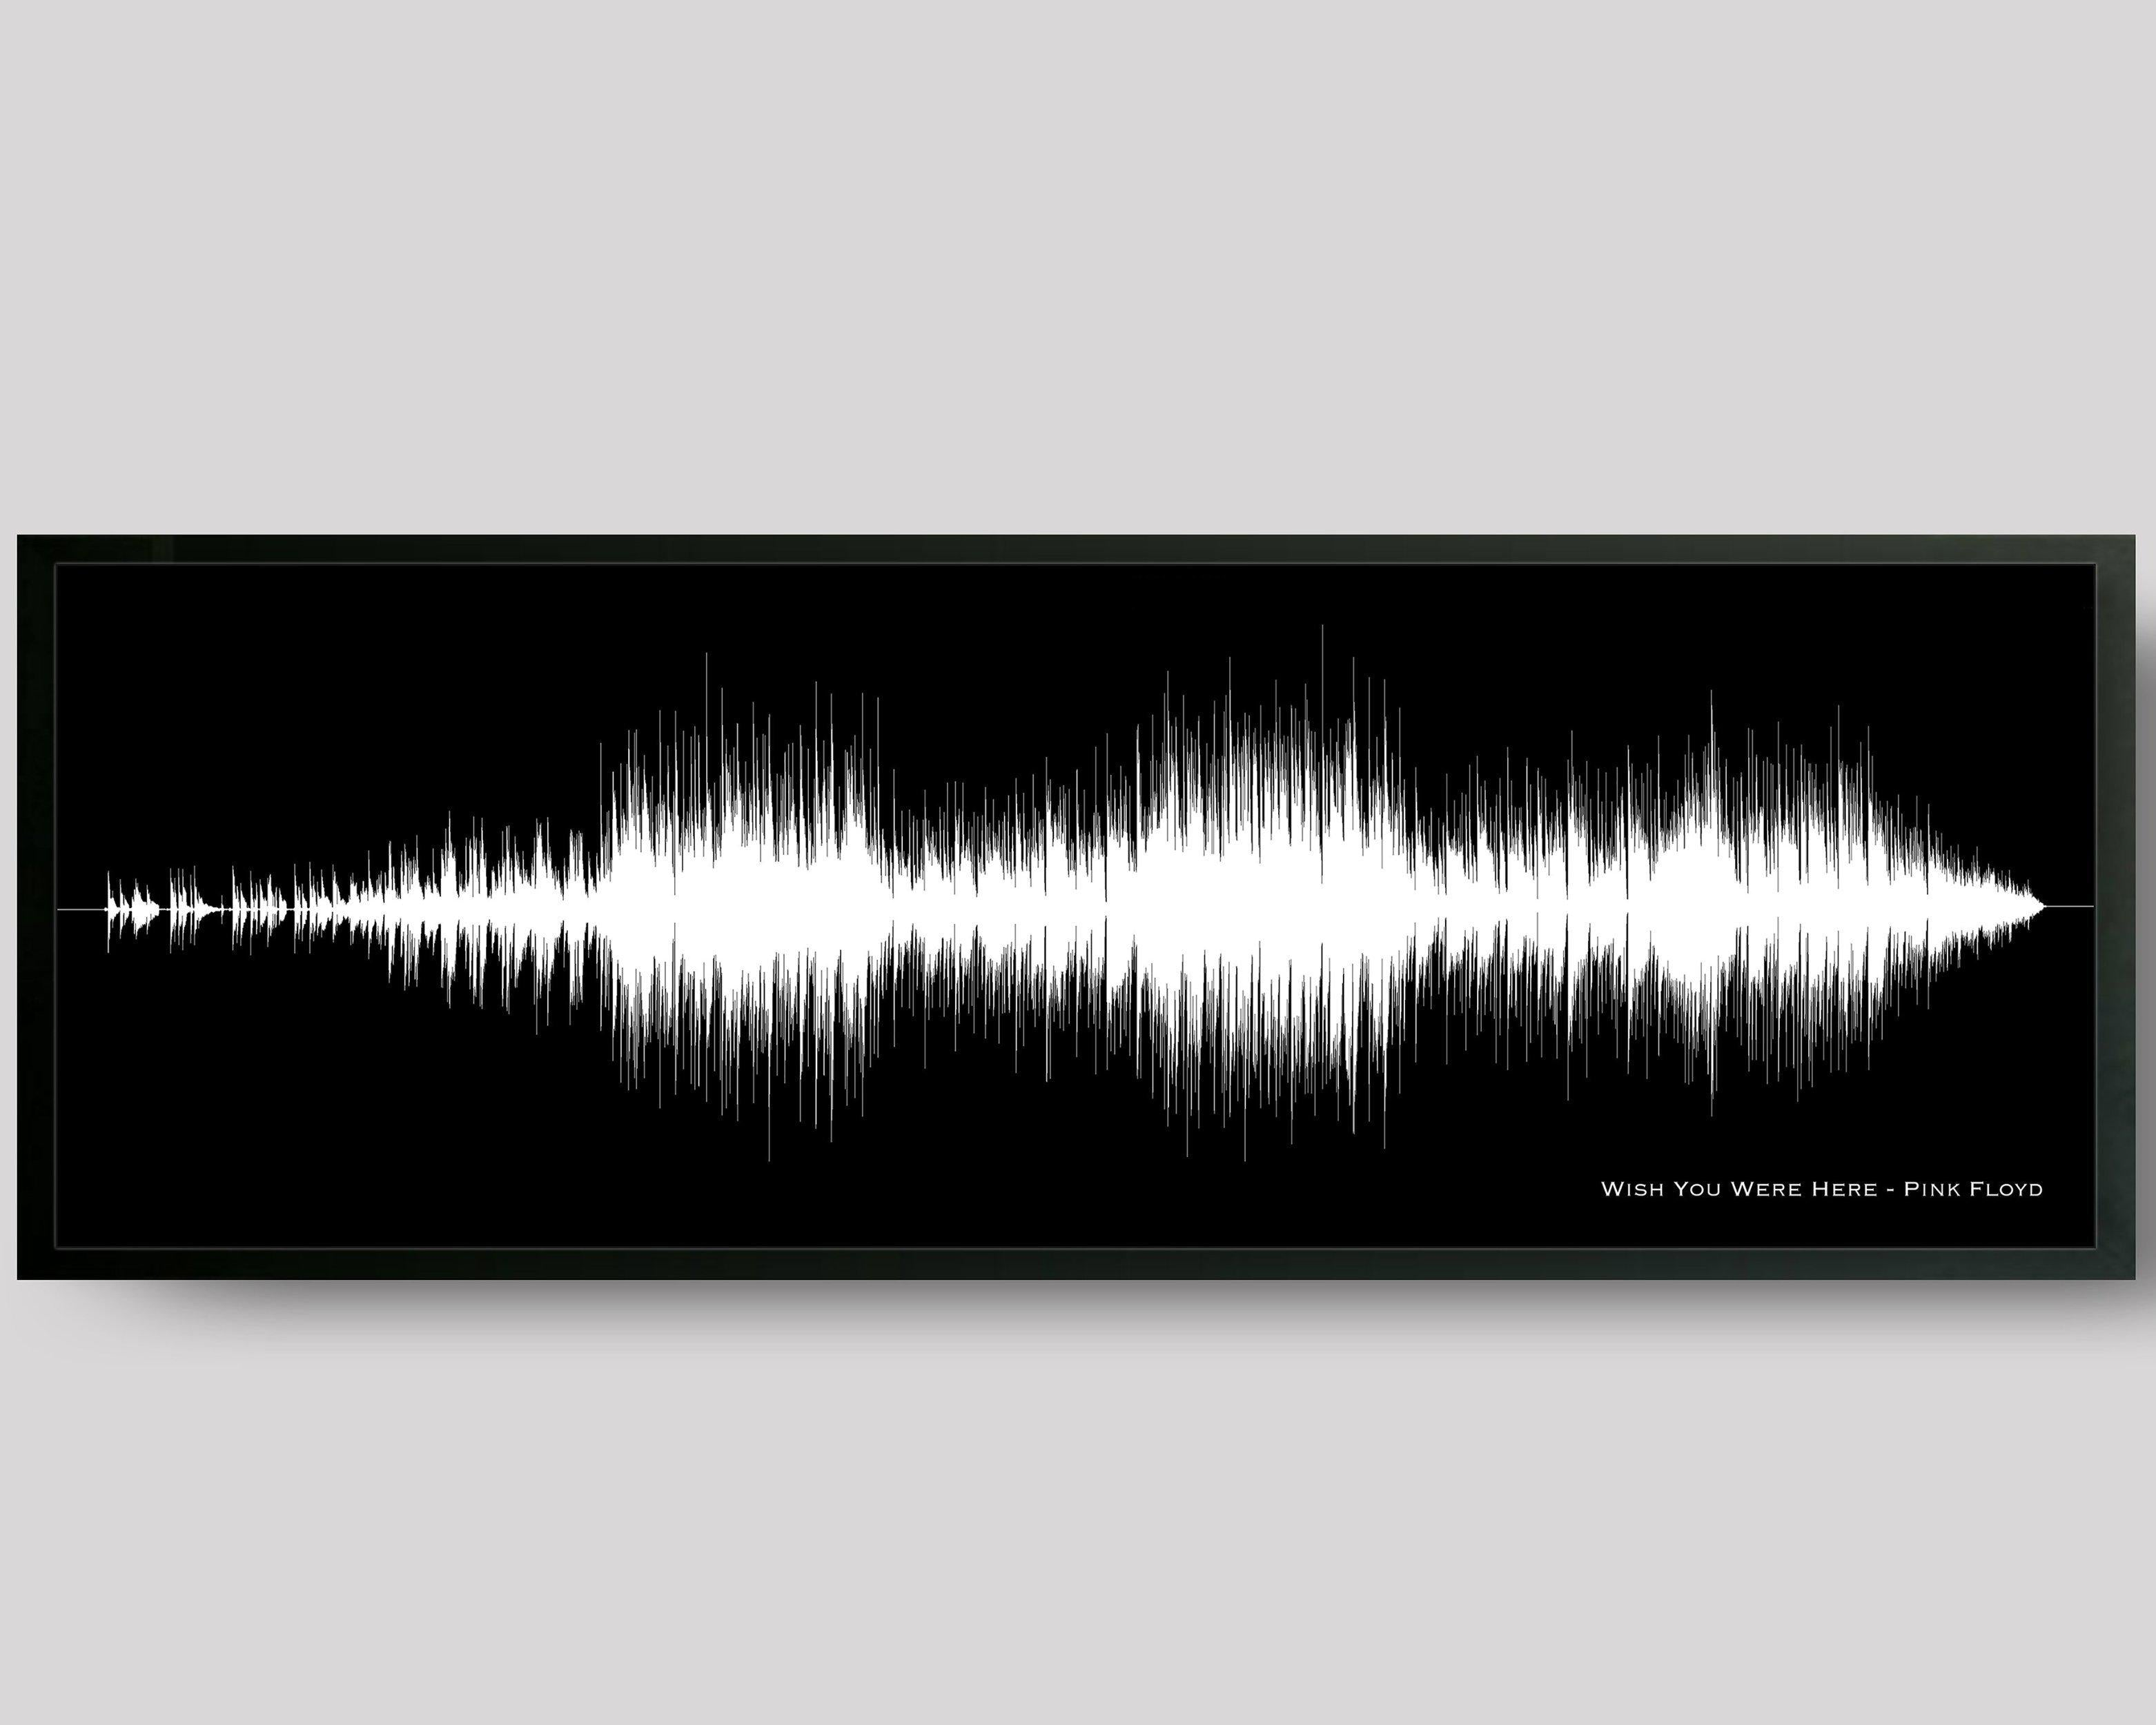 Song Sound Wave Print Birthday Gift For Boyfriend DJ Music